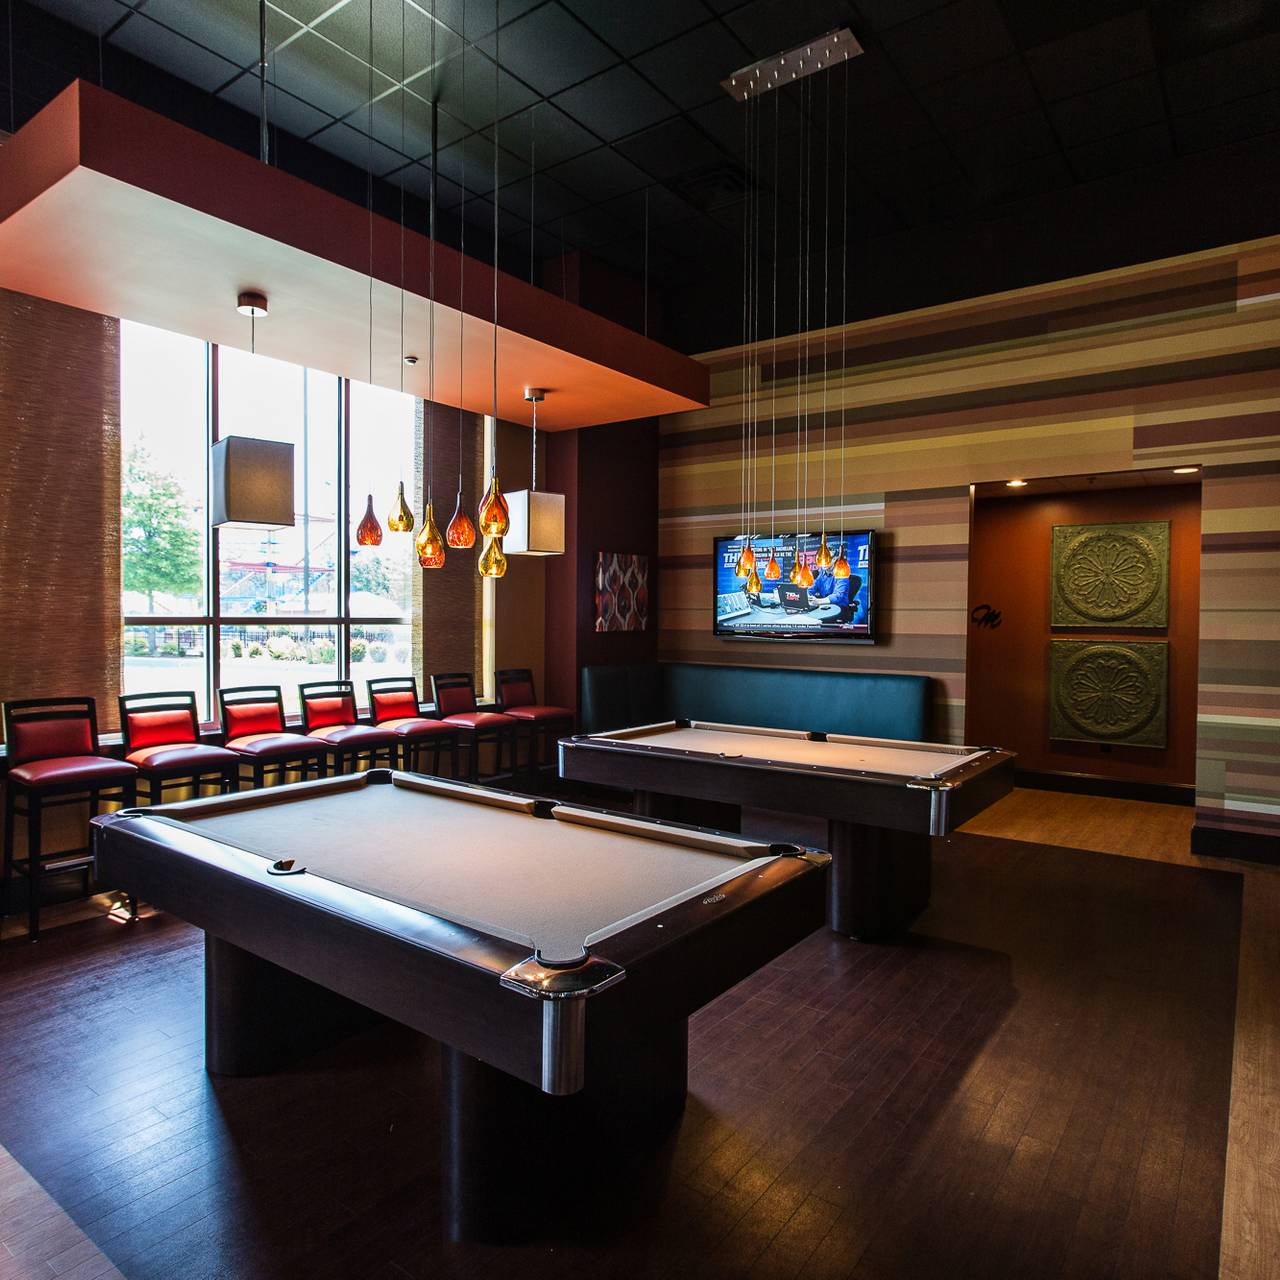 The Chill Lounge At Frankieu0027s Of Raleigh Restaurant   Raleigh, NC |  OpenTable